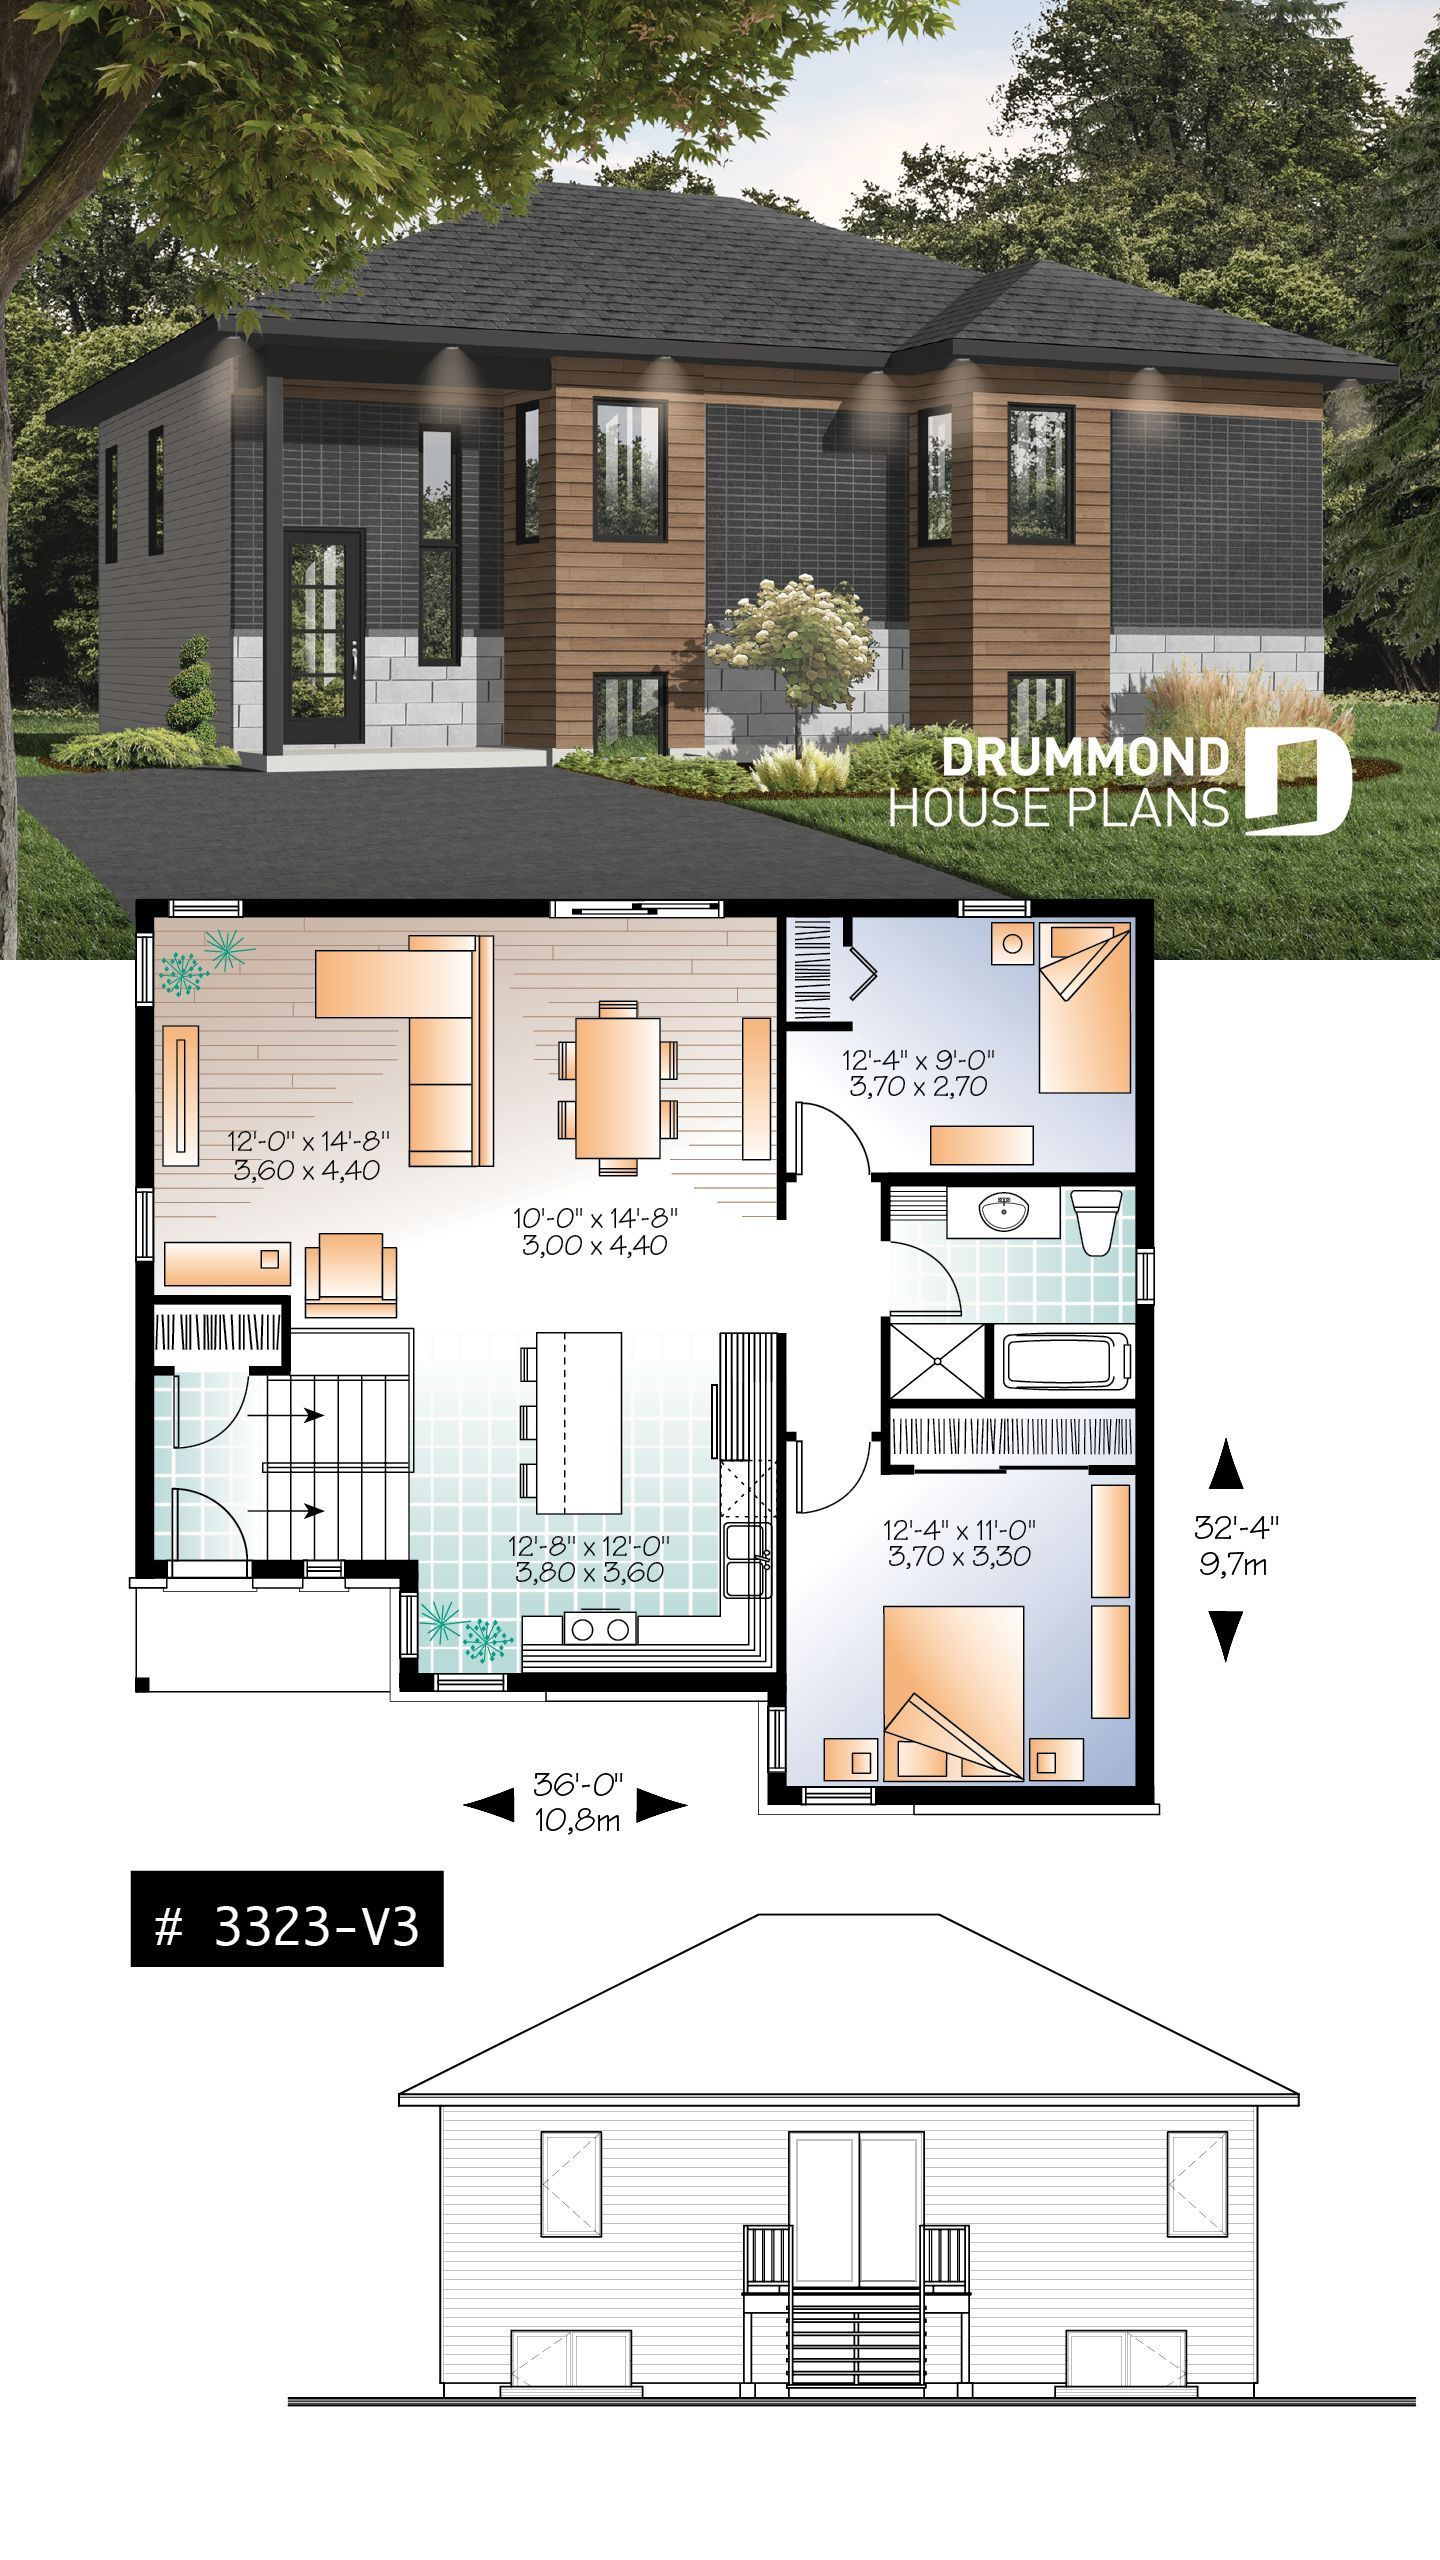 Small Modern House Of 2 Bedroom Small Modern House Of 2 Bedroom Nika Cerise Nika Small Modern H In 2020 Bungalow House Plans House Plans Uk Small Modern Home